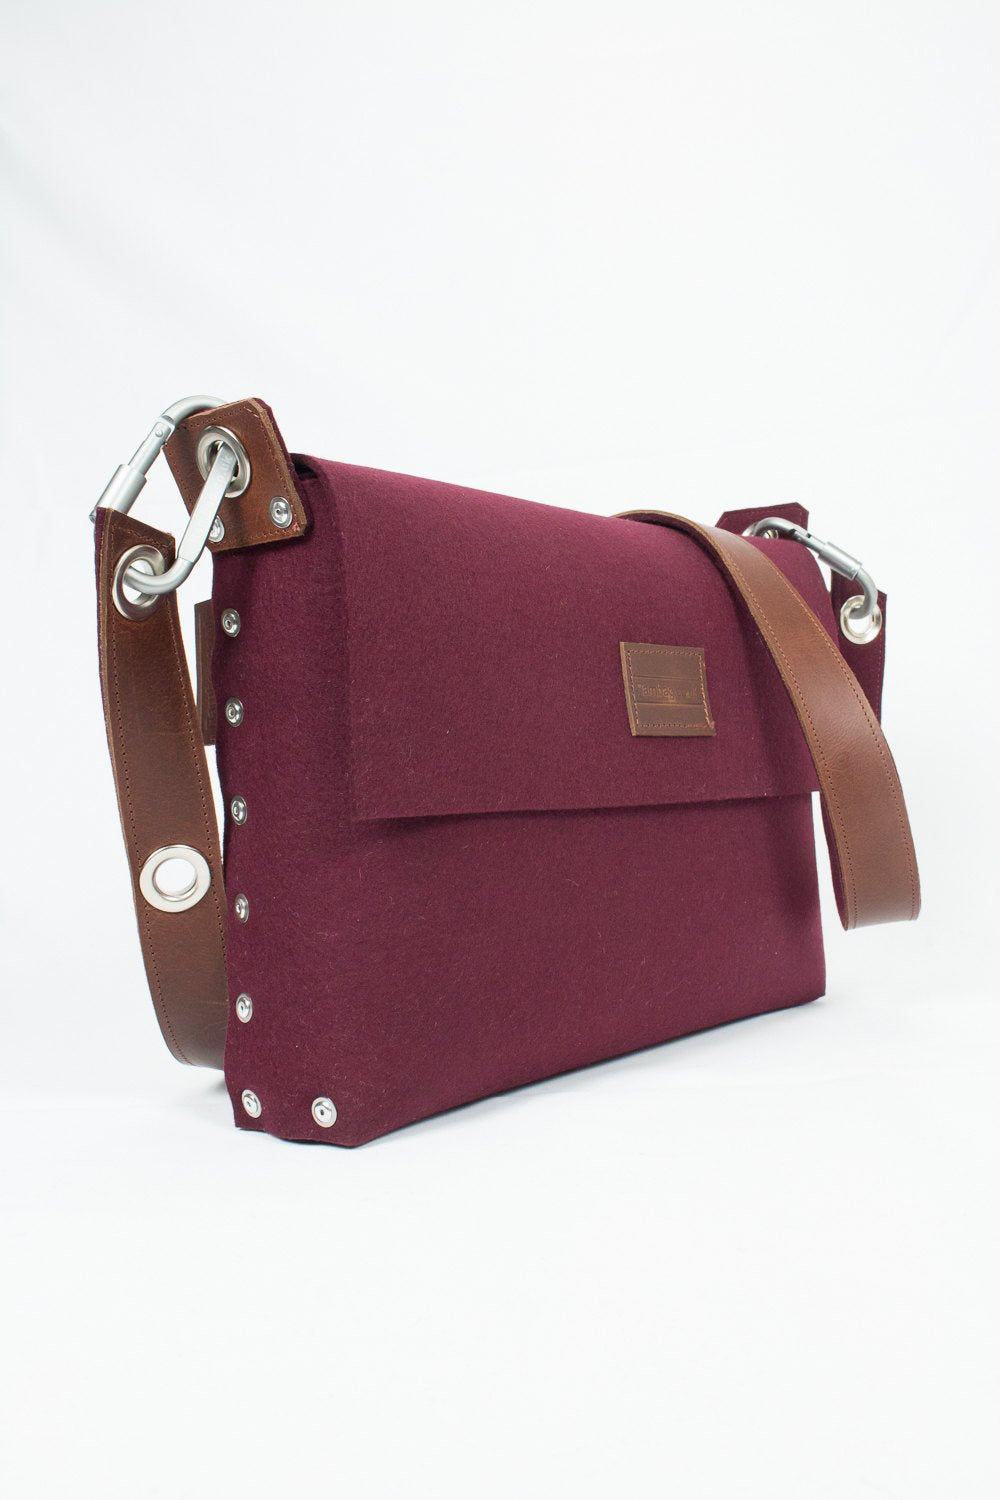 Messenger Bag, Mens satchel bag